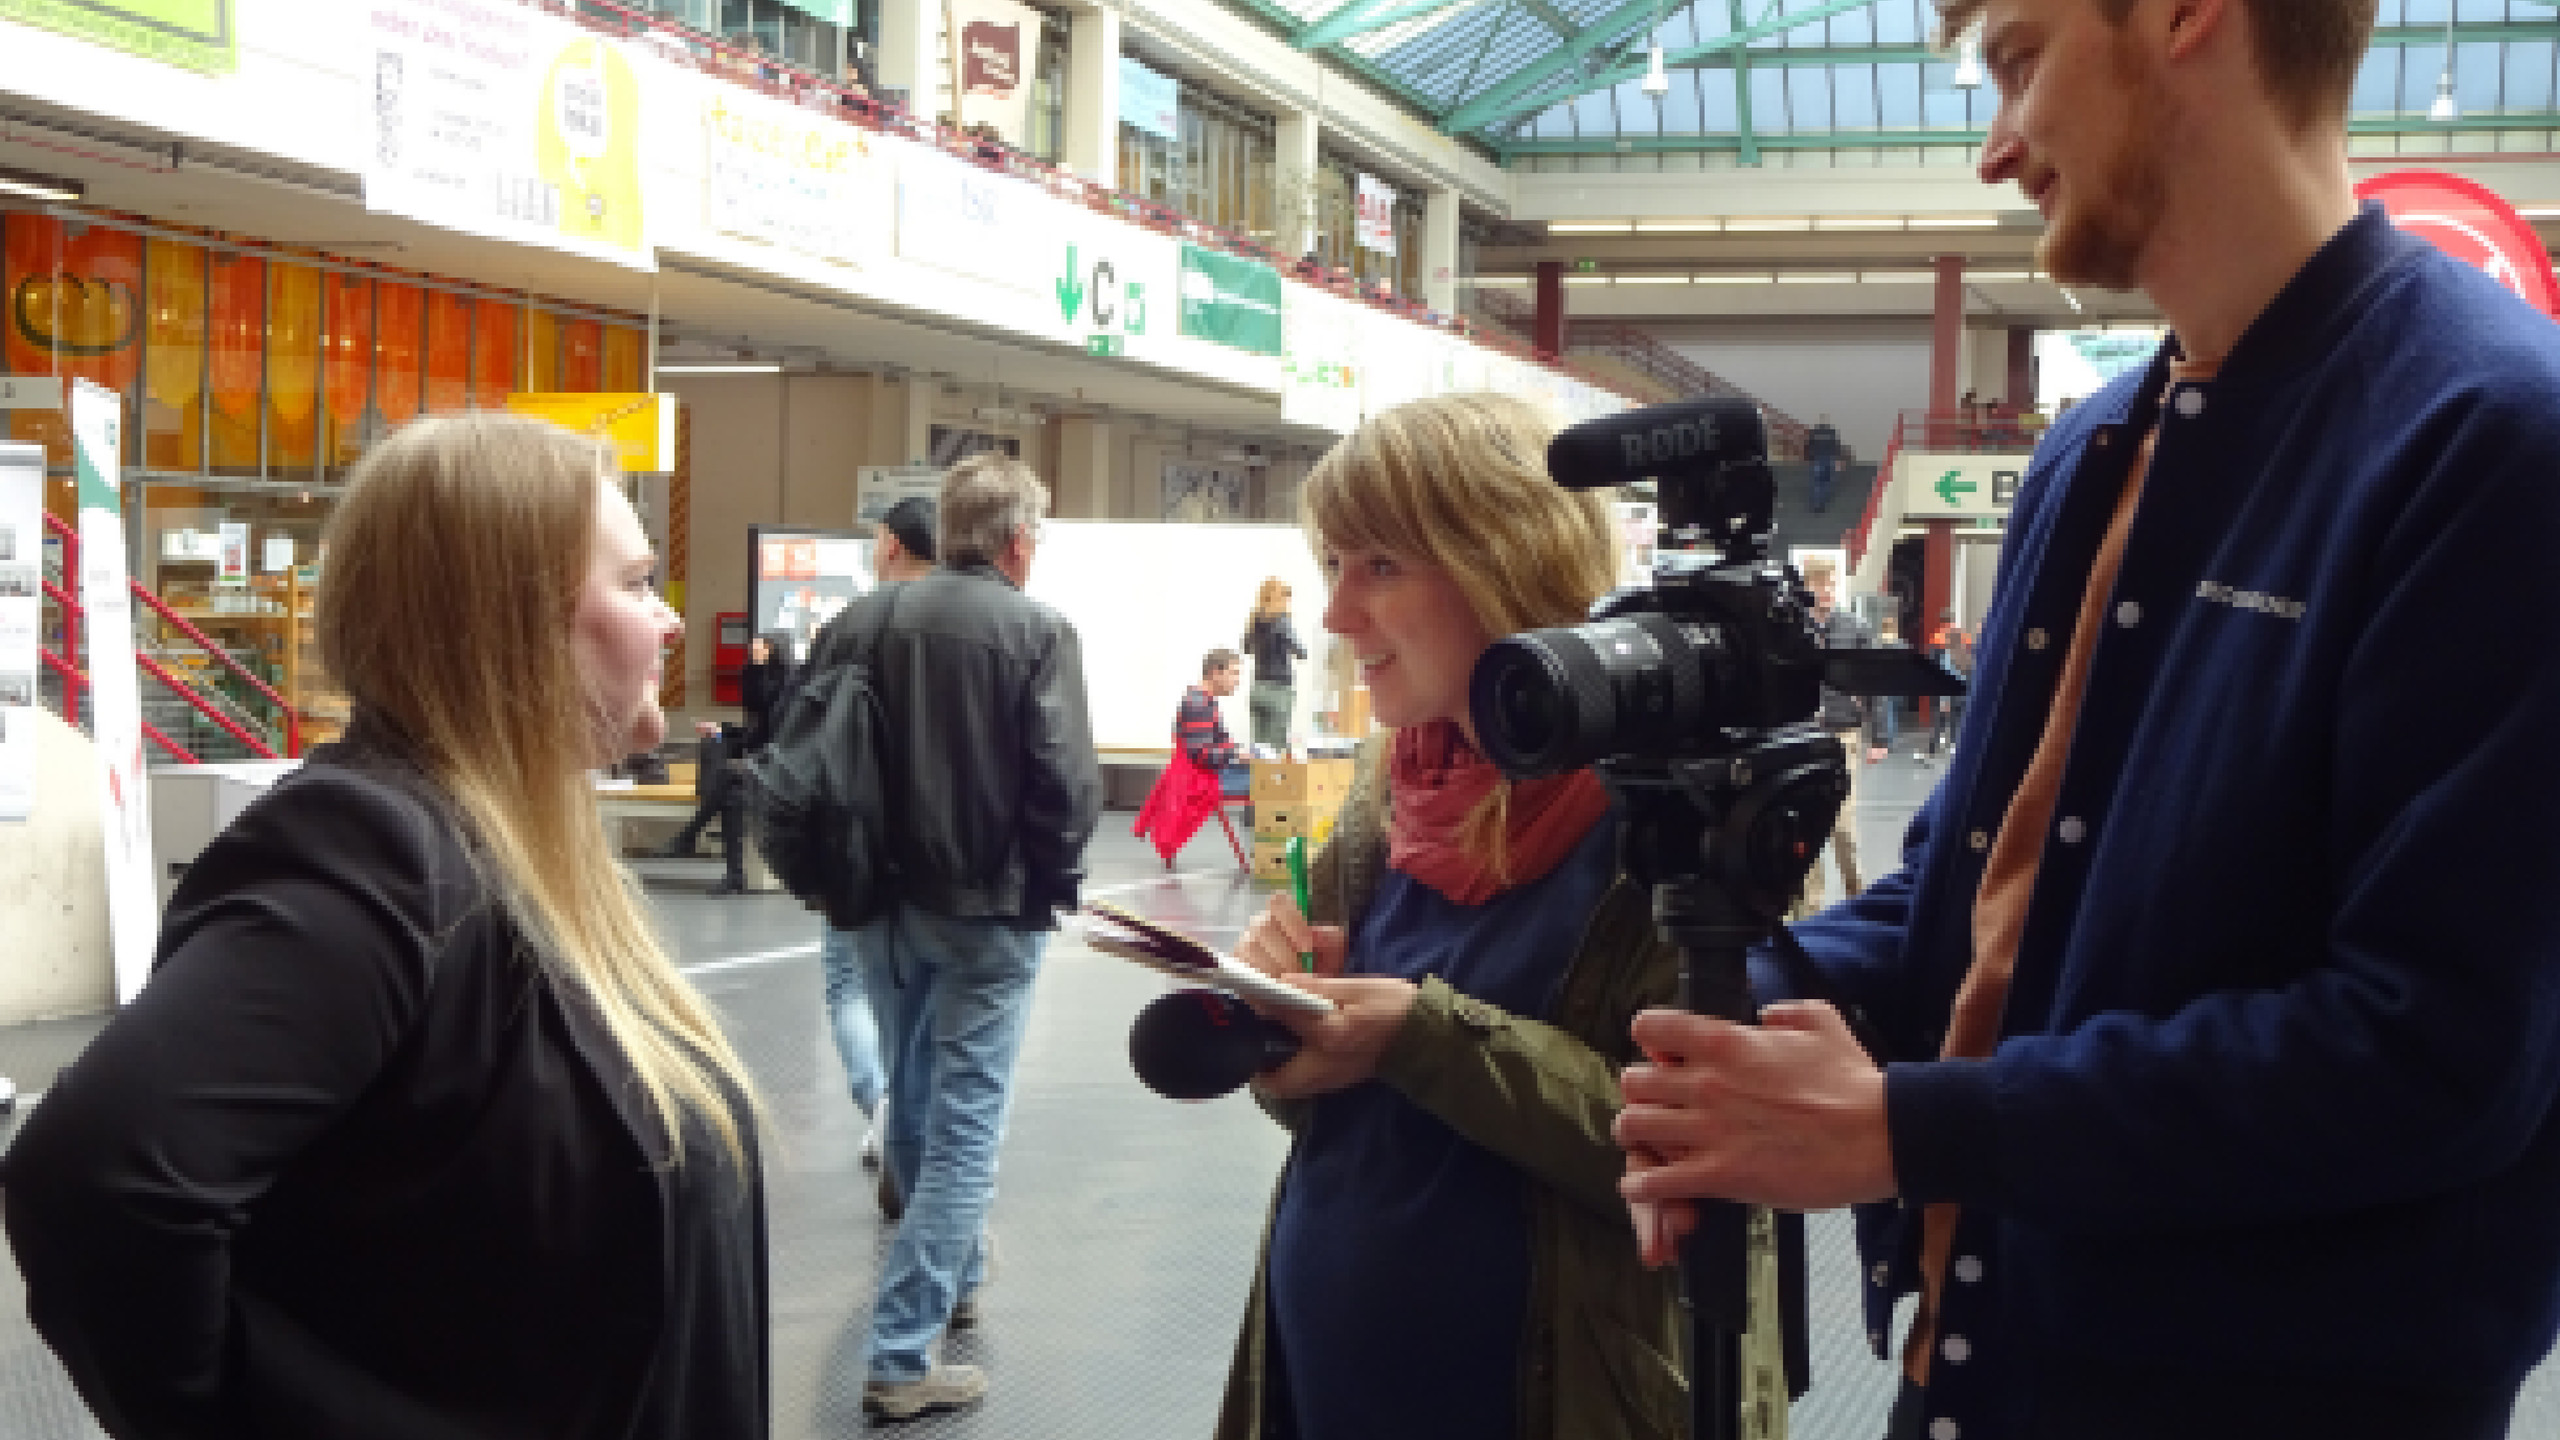 Antonia im Interview